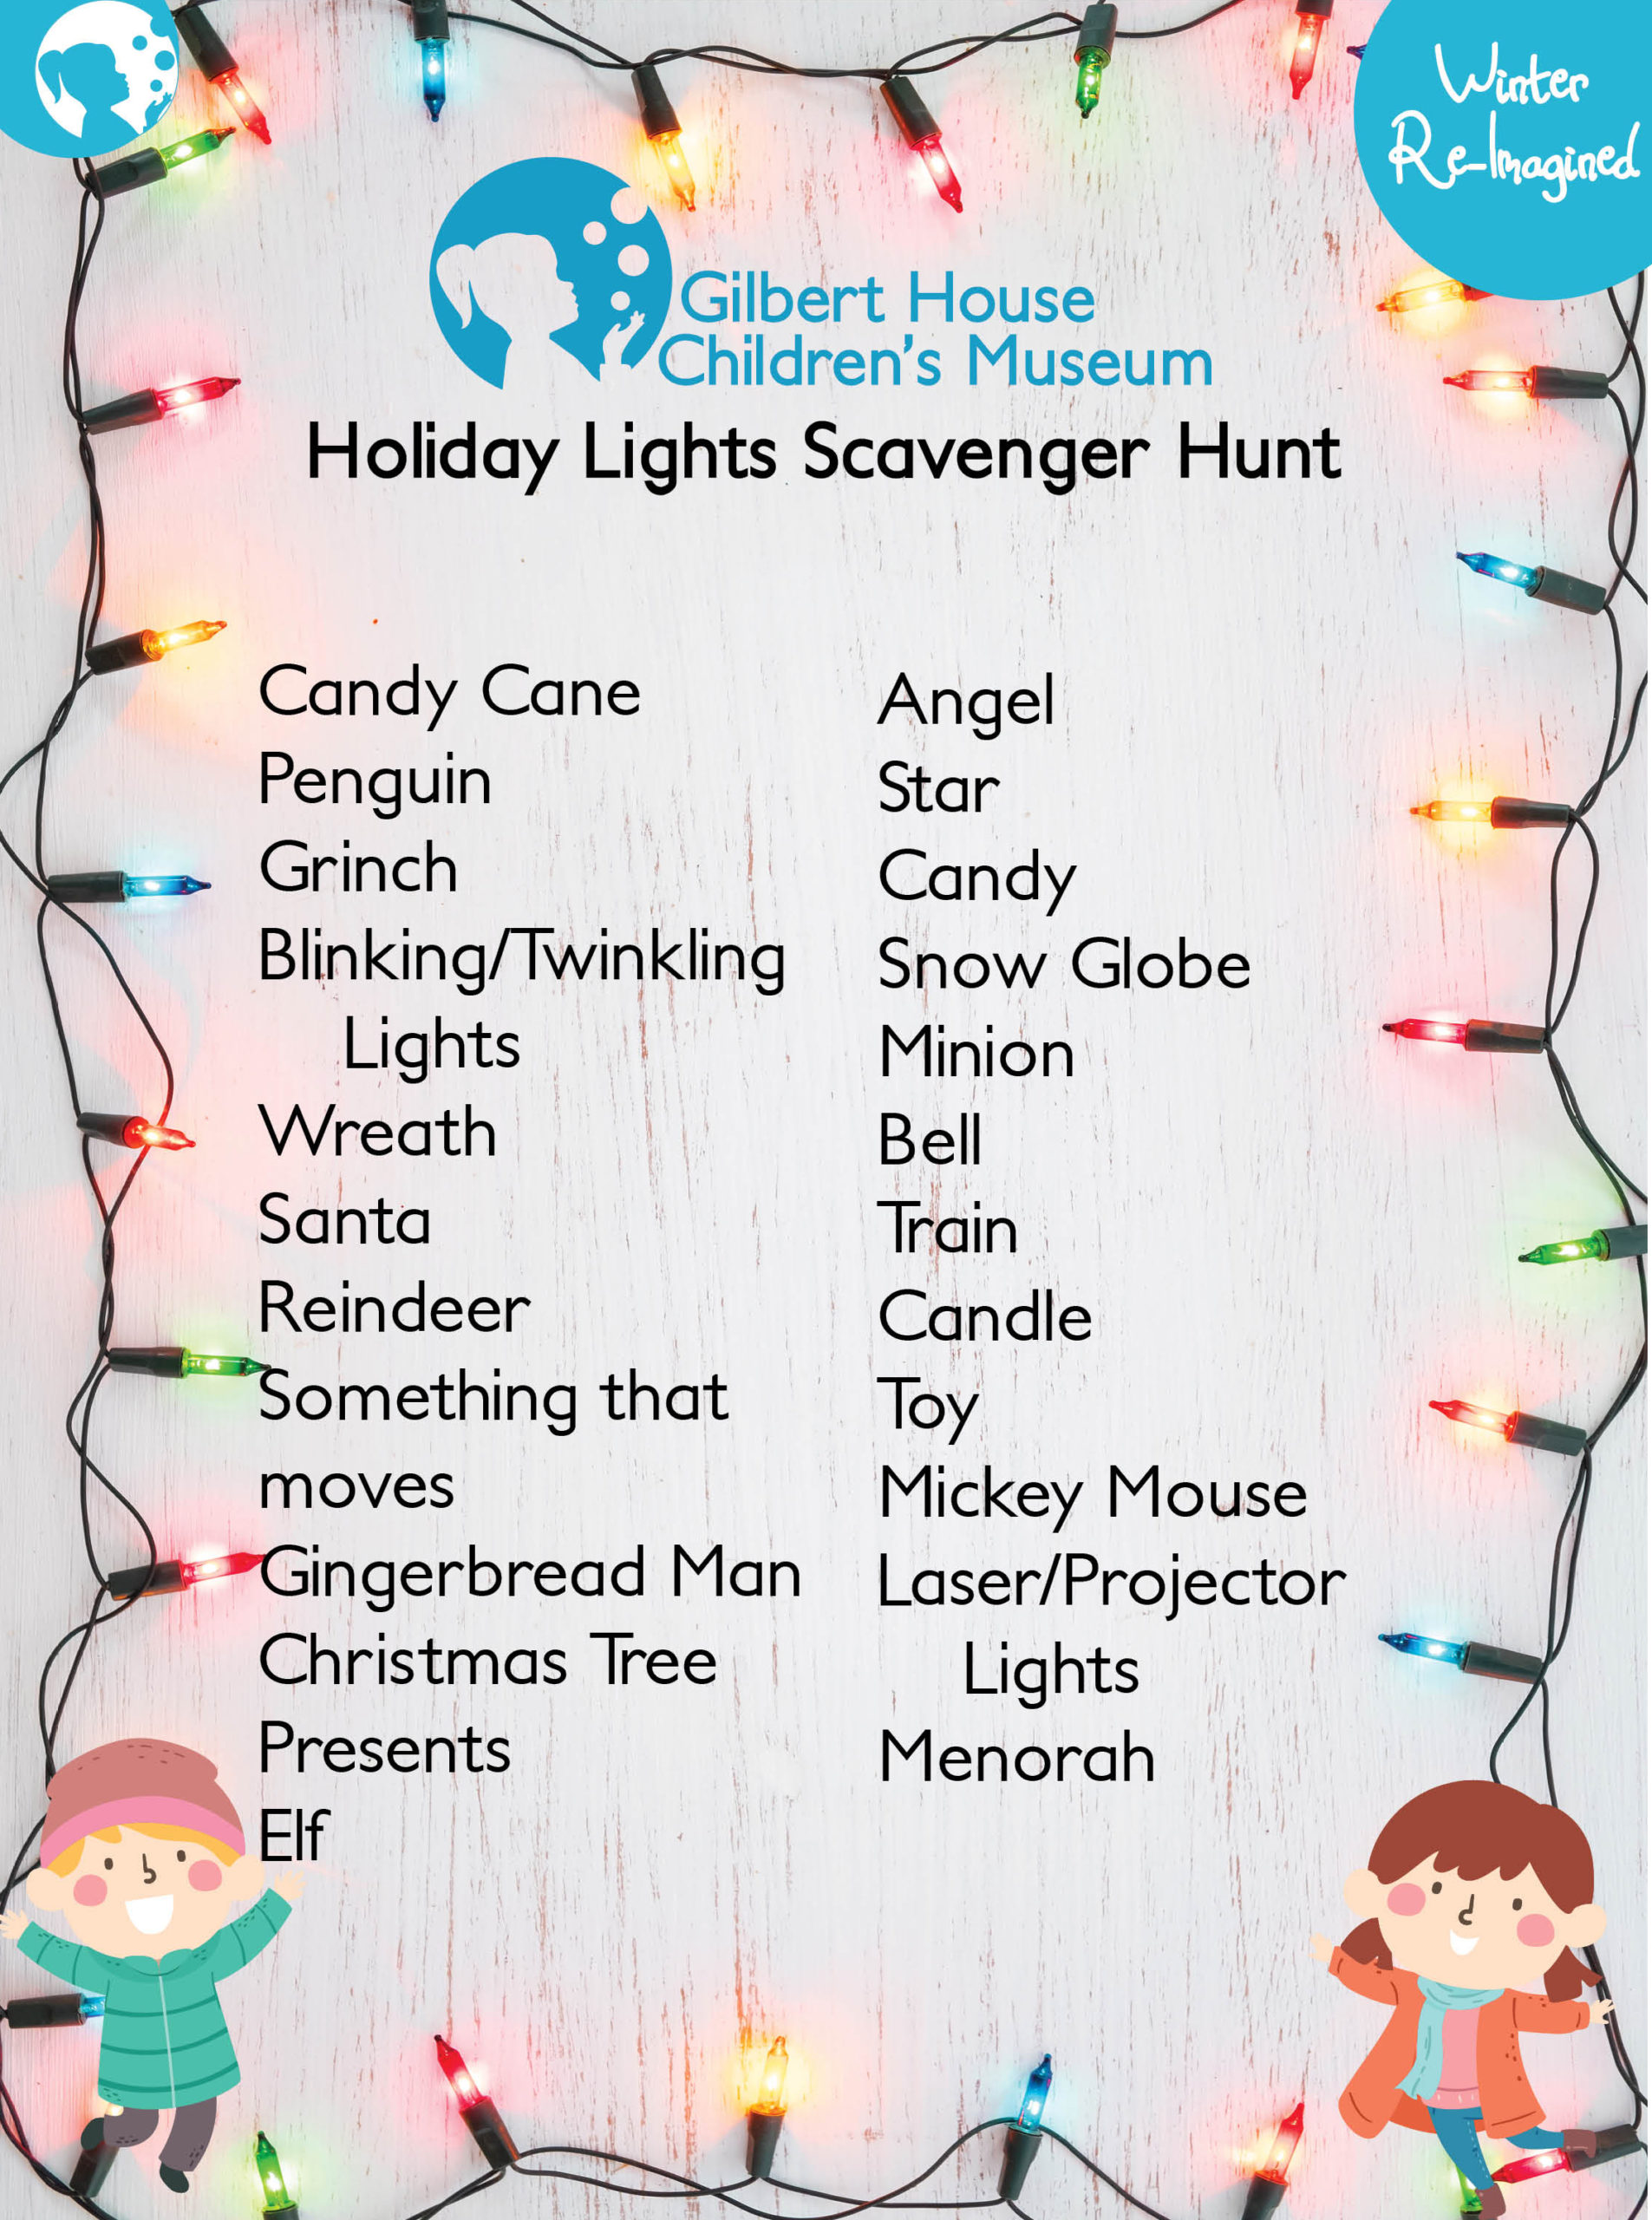 A listing of outdoor holiday lights and decorations to find in your neighborhood